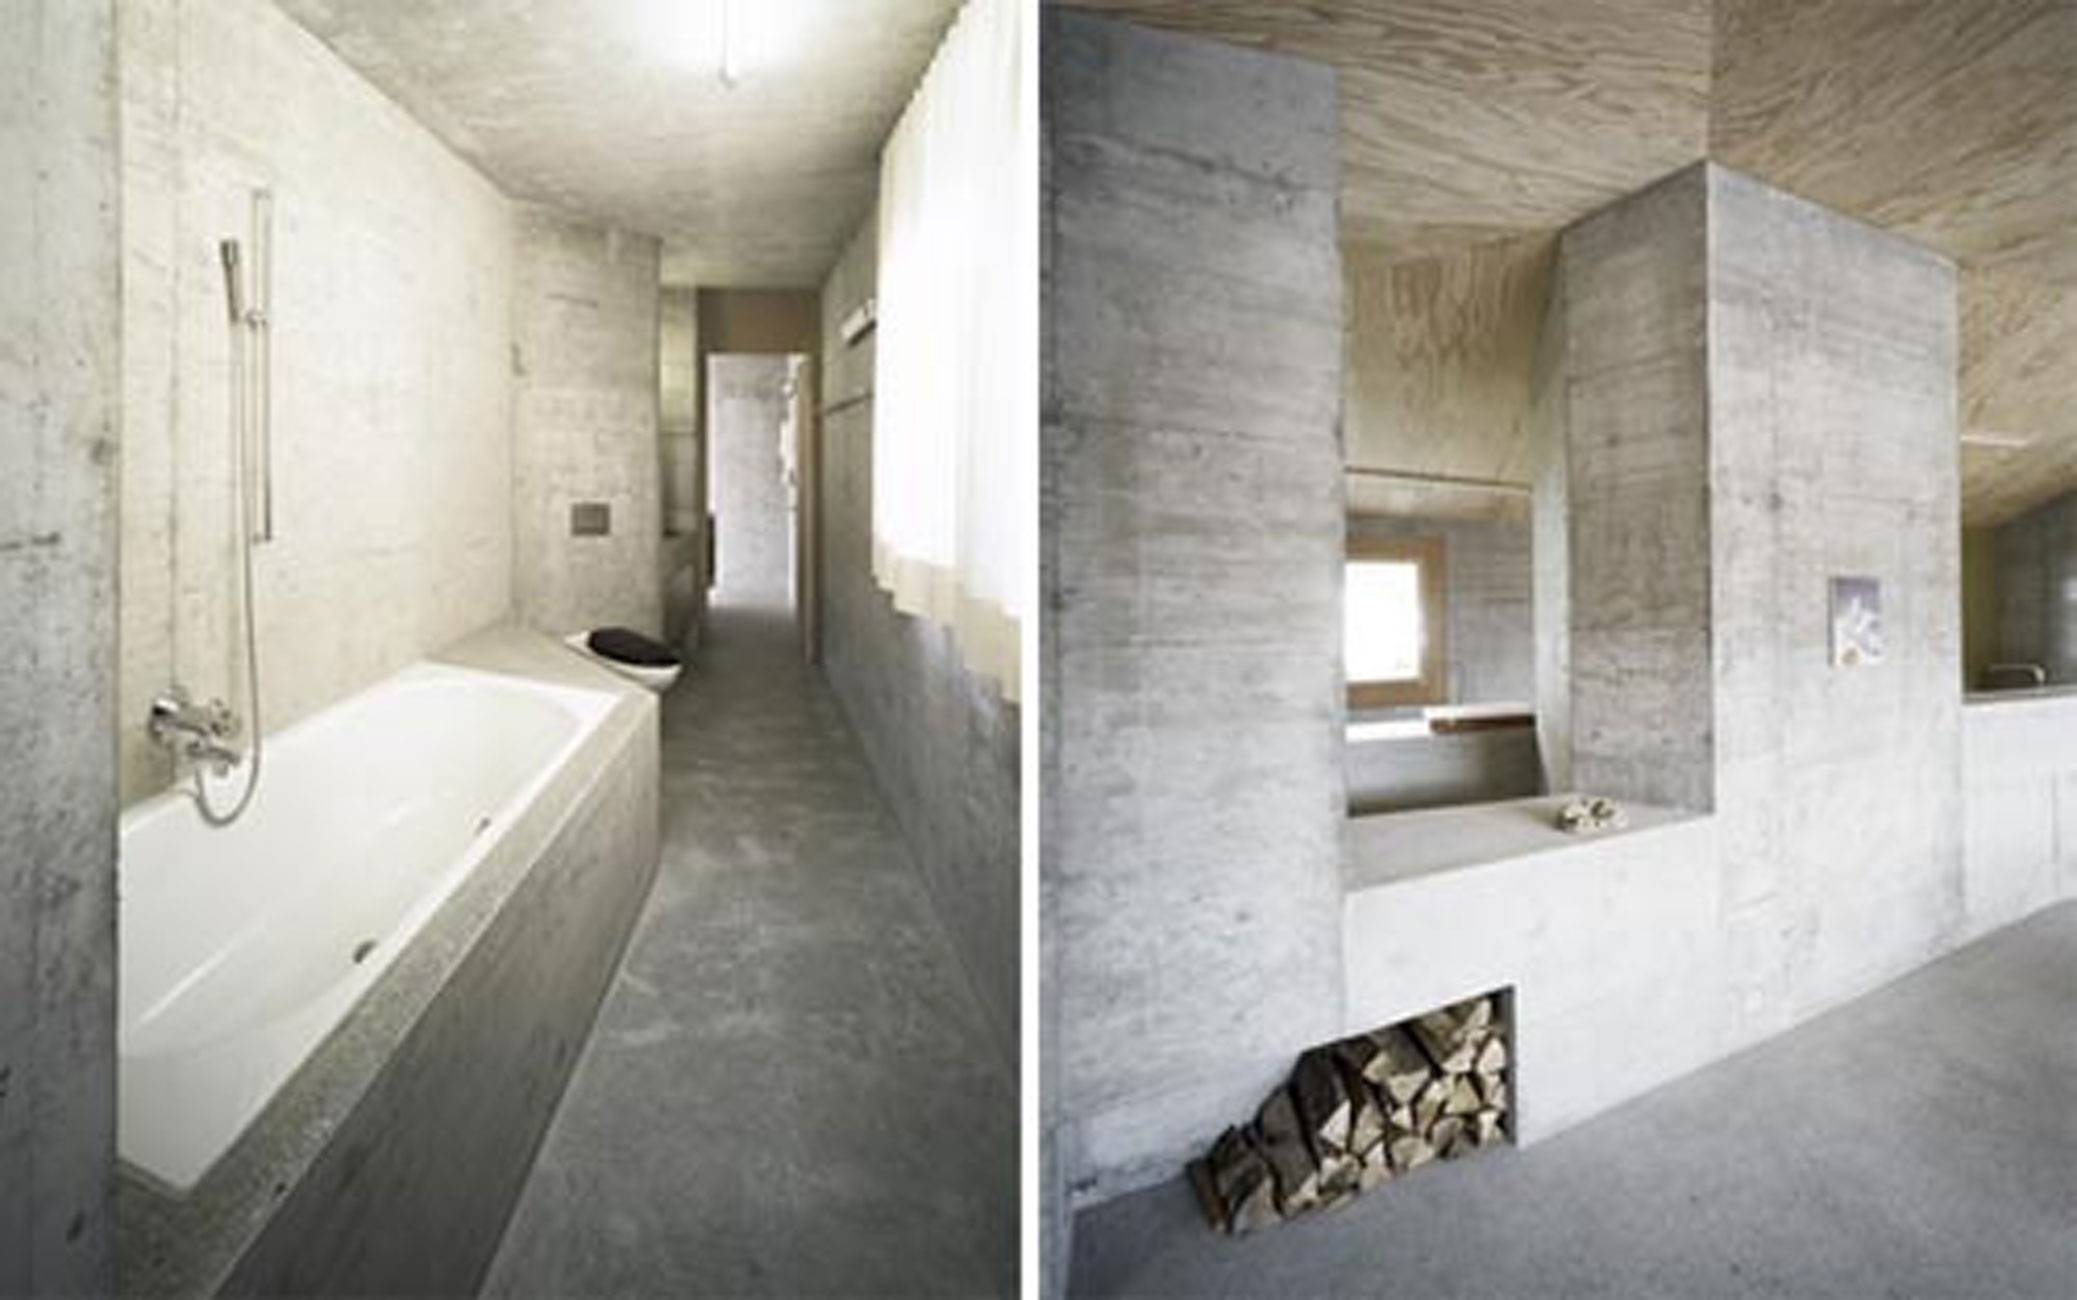 solid concrete house architecture and minimalist interior design in berlin bathroom viahouse com. Black Bedroom Furniture Sets. Home Design Ideas